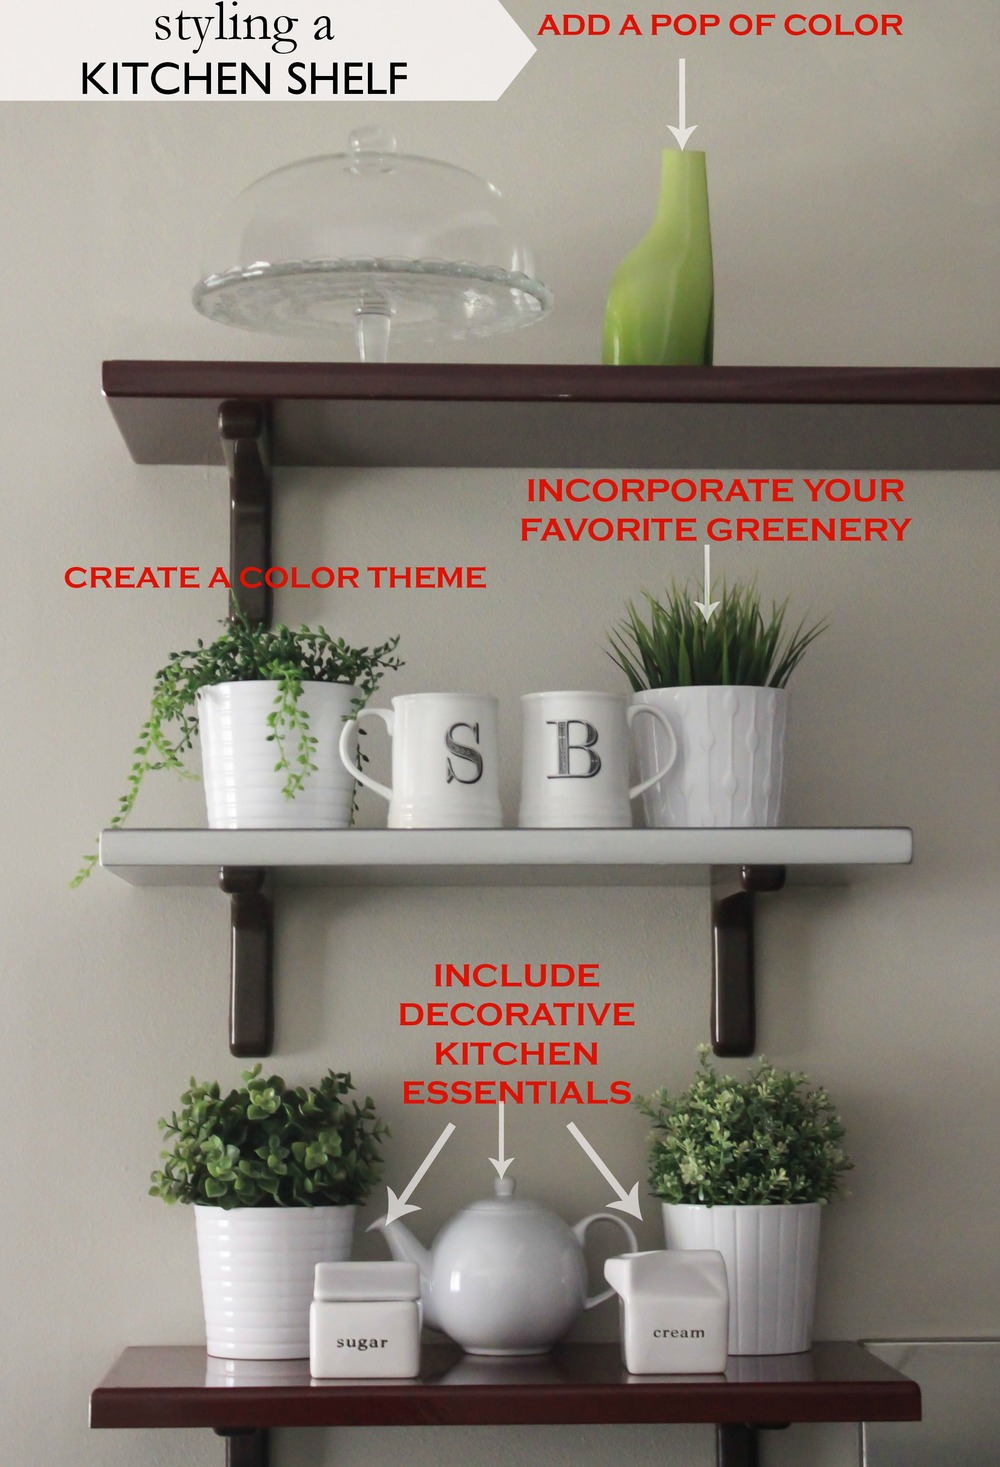 Cake Stand with Lid-Ikea/Plants & Plant Pots-Ikea/Vase-Ikea/Creamer & Sugar Containers-Crate & Barrel/Coffee Mugs-similar Anthropologie/Teapot-similar Crate & Barrel